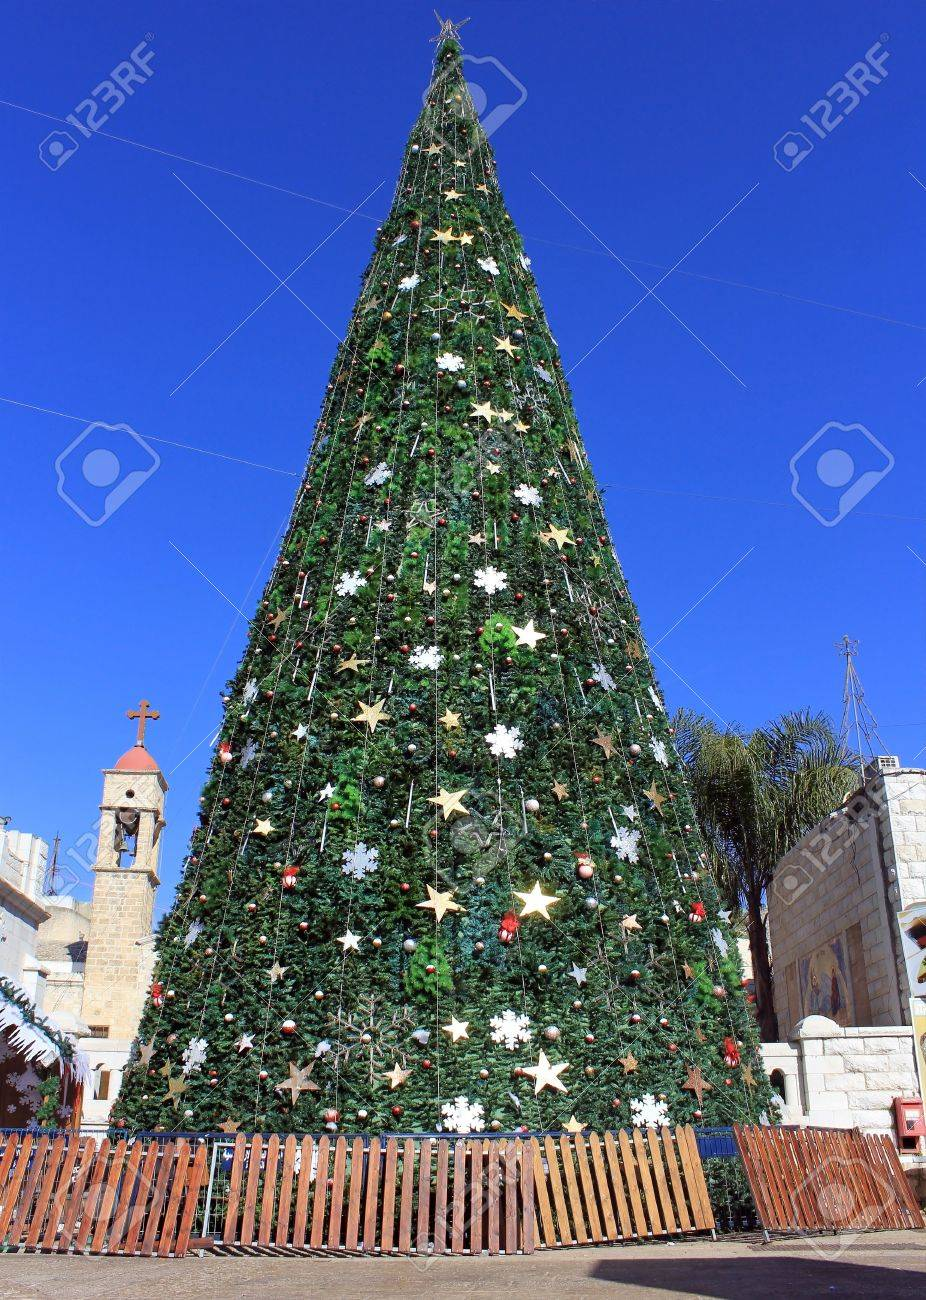 Christmas tree in the square in front of the Greek Orthodox Church of the Annunciation in Nazareth, Israel Stock Photo - 16944477